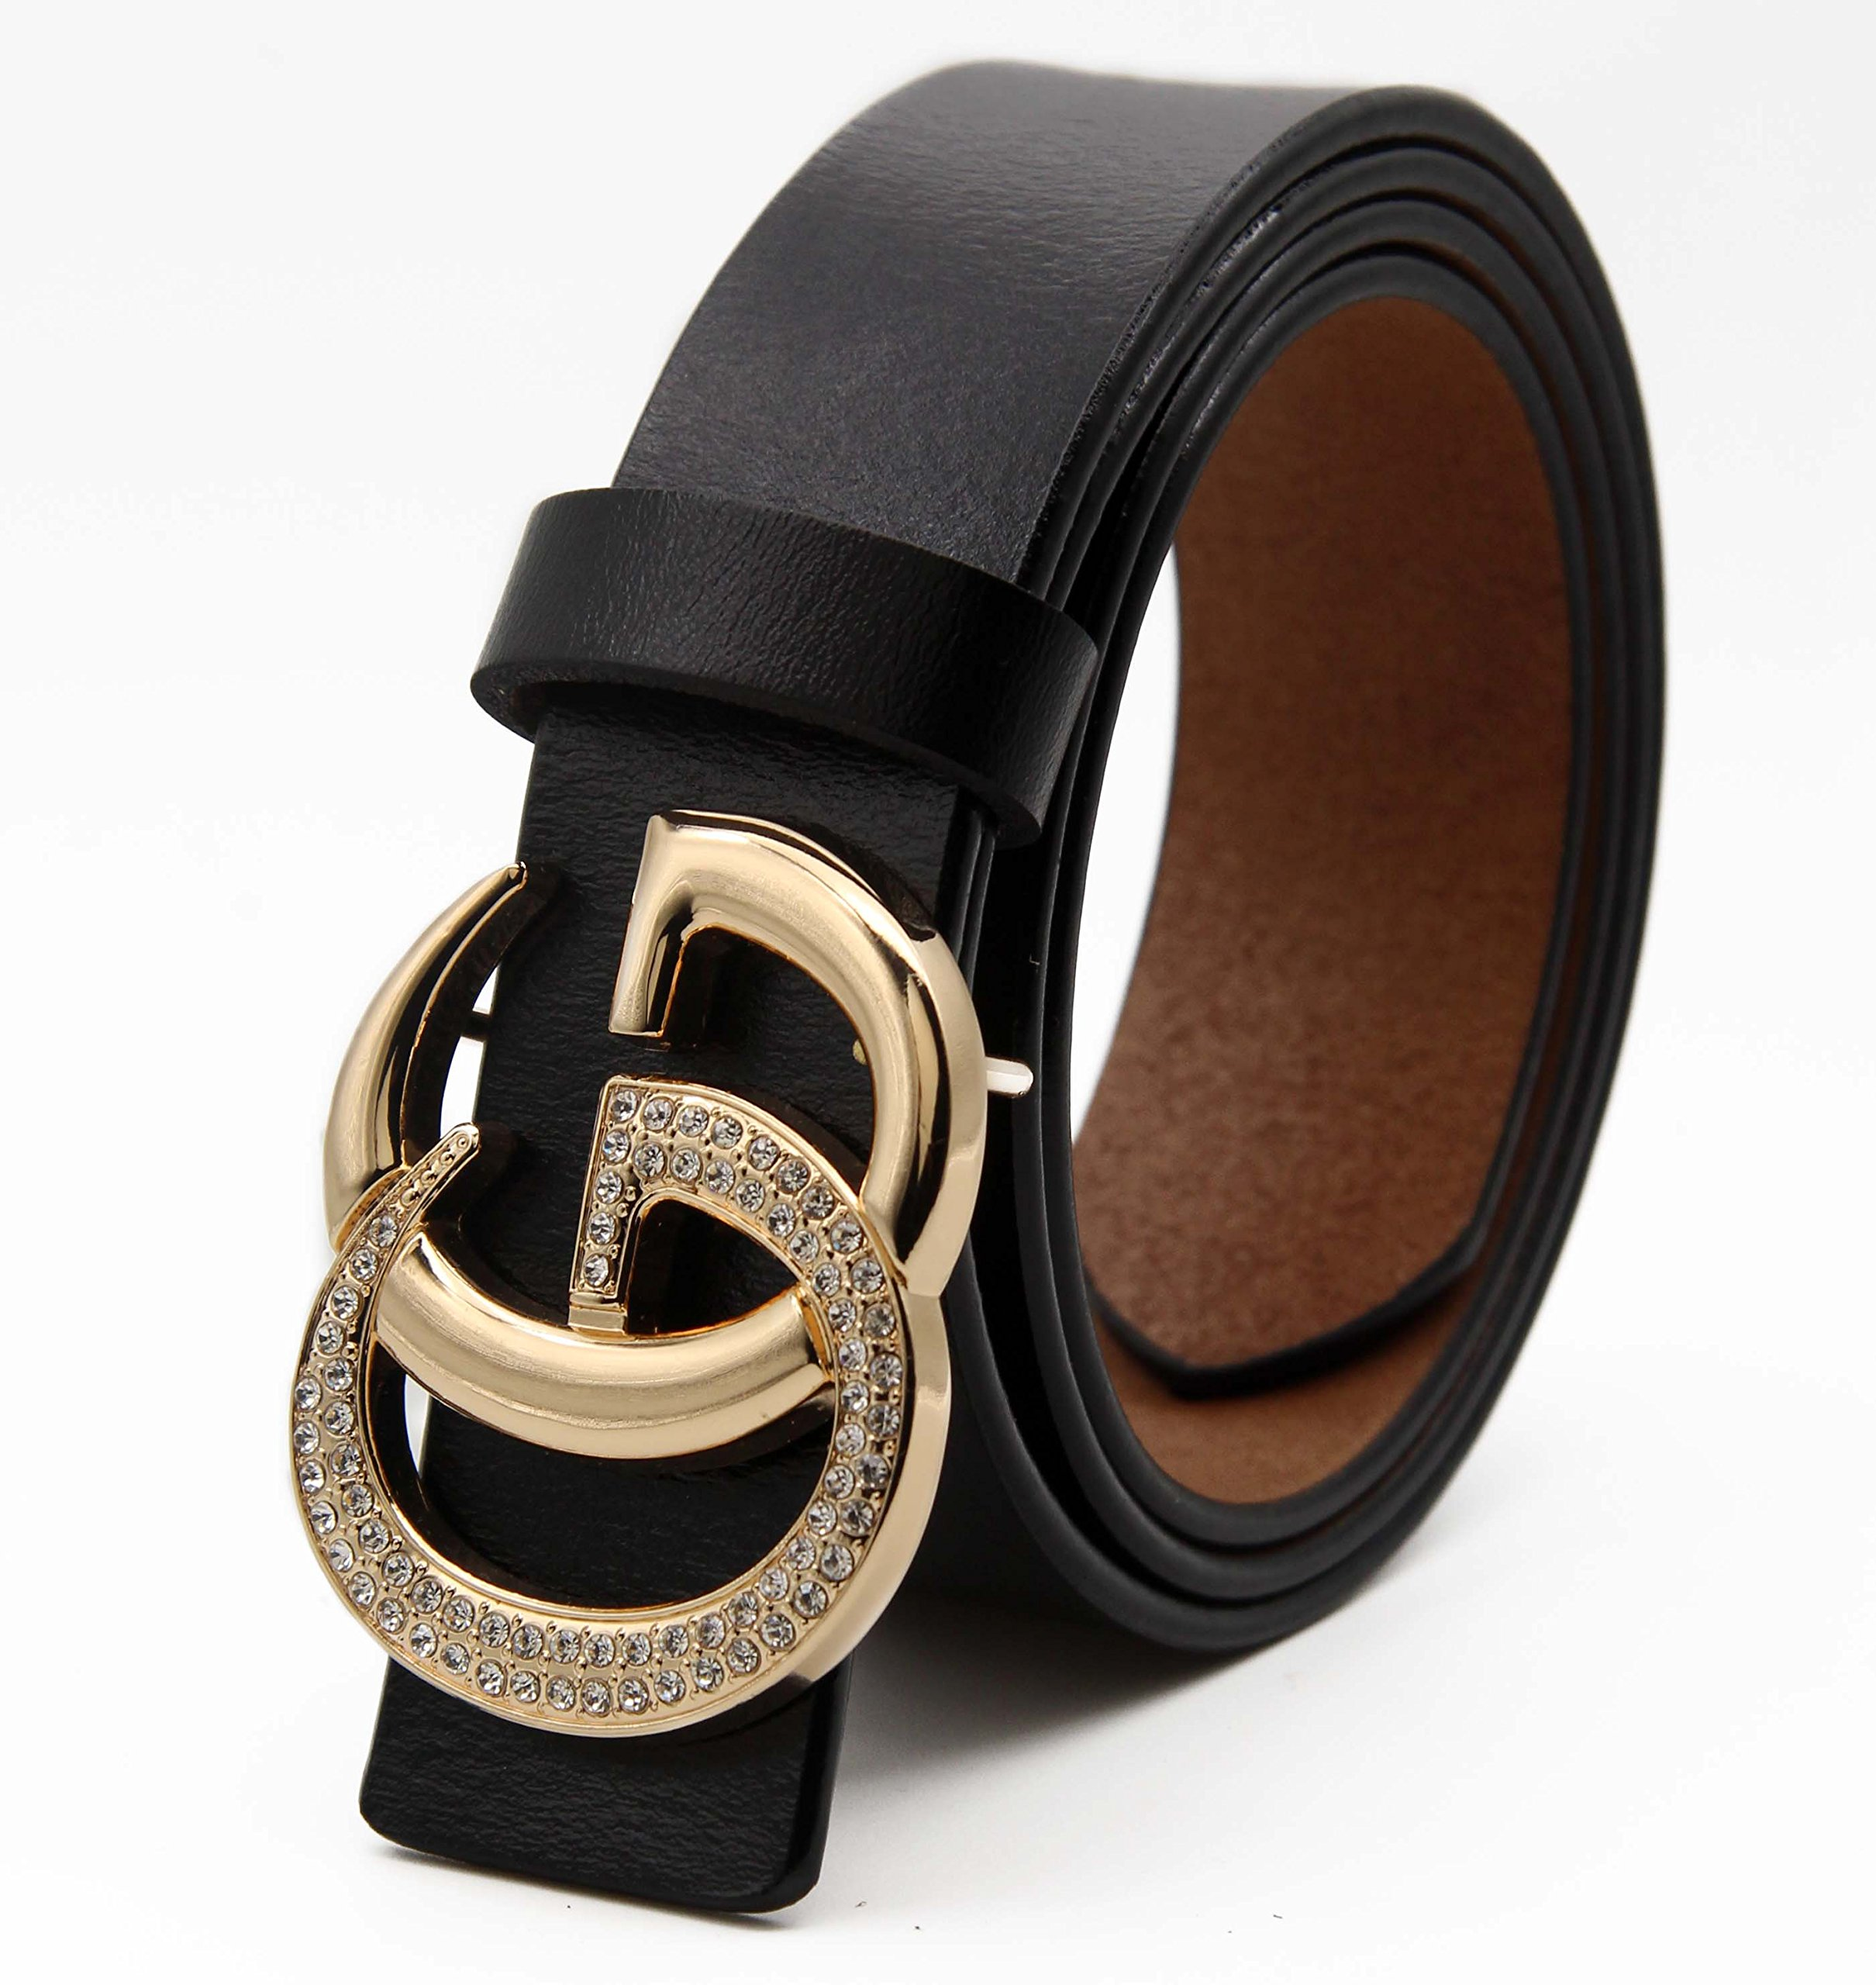 Women's Cowhide Leather Belt Gold Zircon Buckle for Pants Jeans Shorts Ladies Design Genuine Belts for GAGOTE (105cm/41.3'', pants size 26''-30'', Black) by GAGOTE (Image #3)